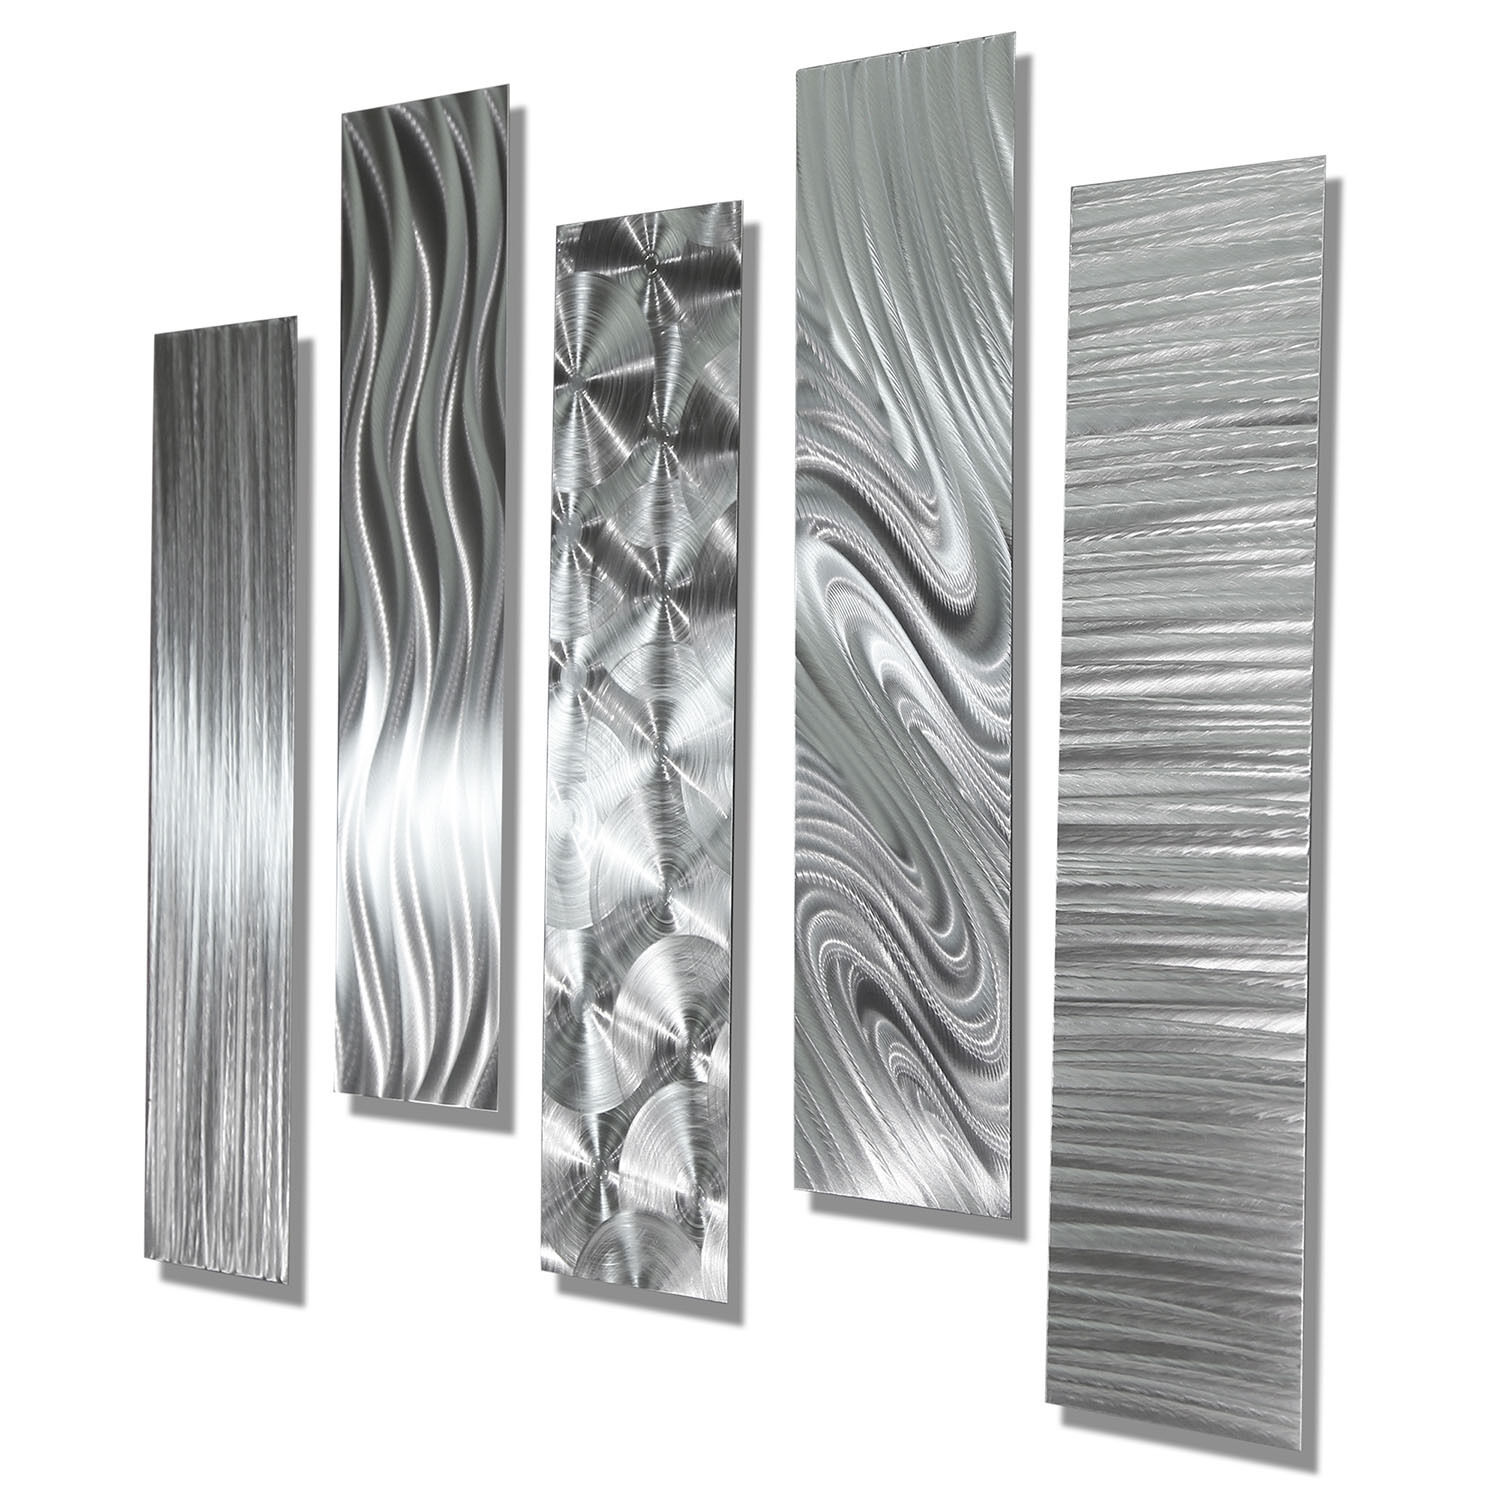 Image of: Modern Abstract Large Metal Wall Art 5 Panels Contemporary Decor Jon Allen Ebay